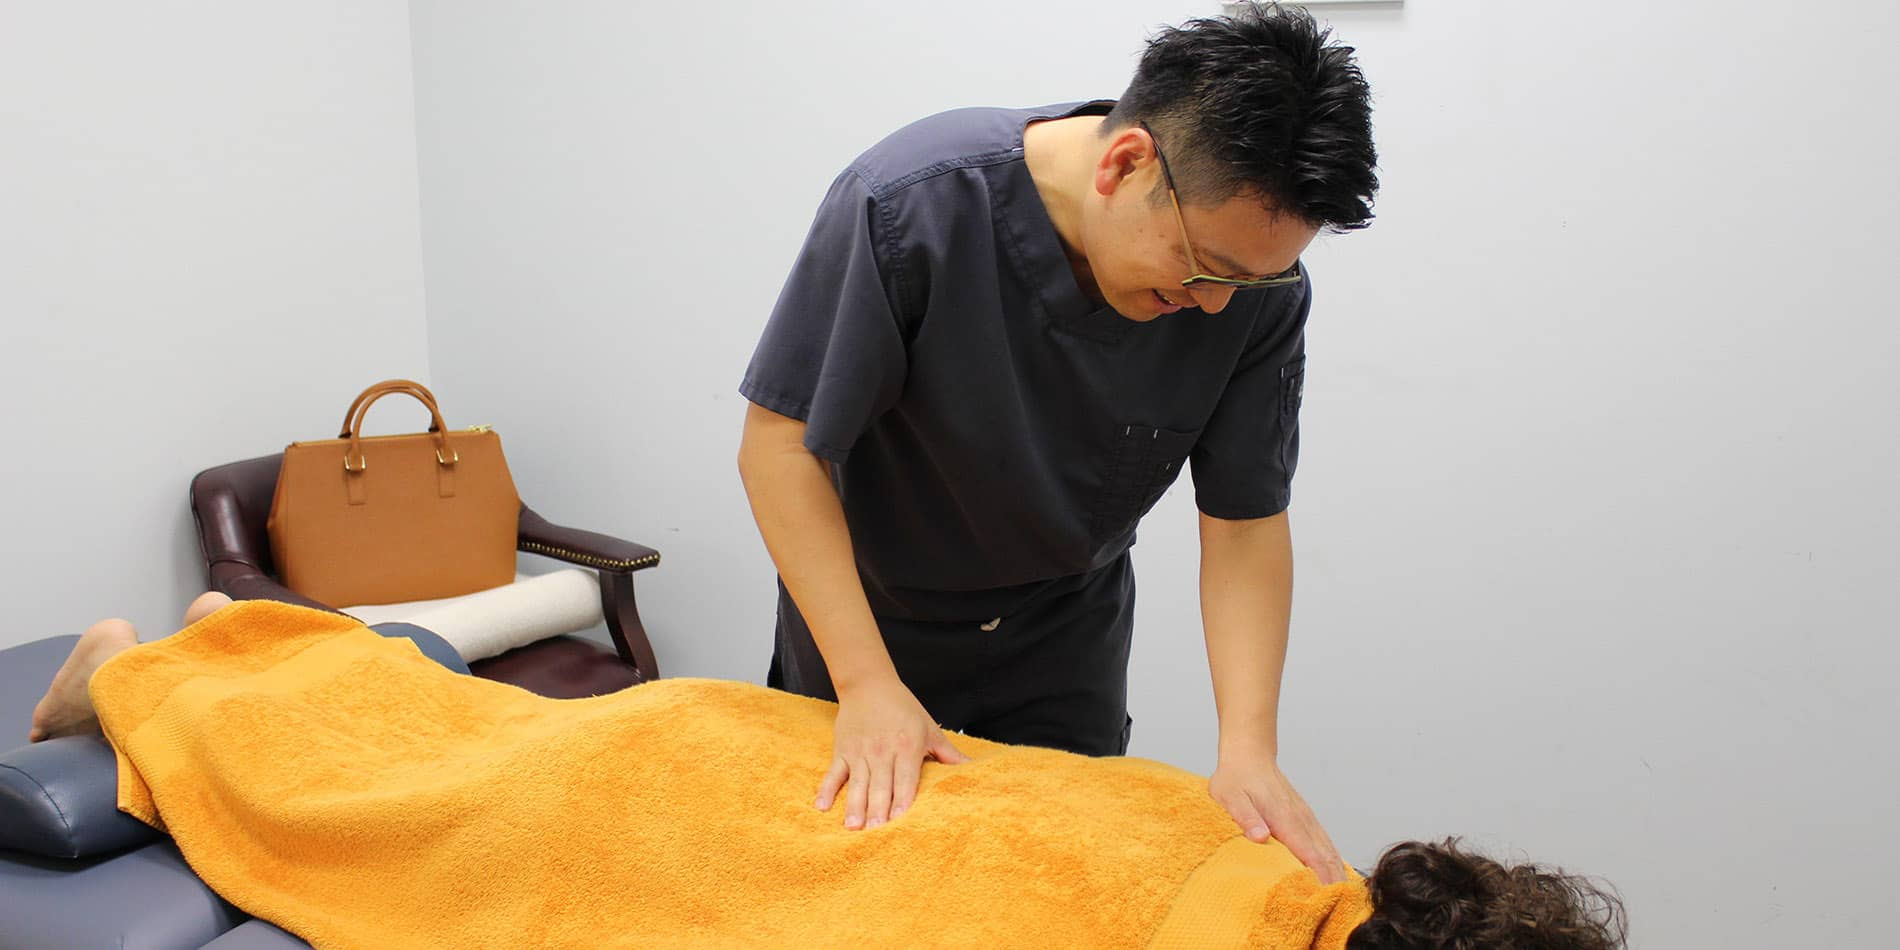 Dr. Cho showcasing state of the art technology for deep-tissue massage therapy and chiropractic care for optimum health and body awareness.